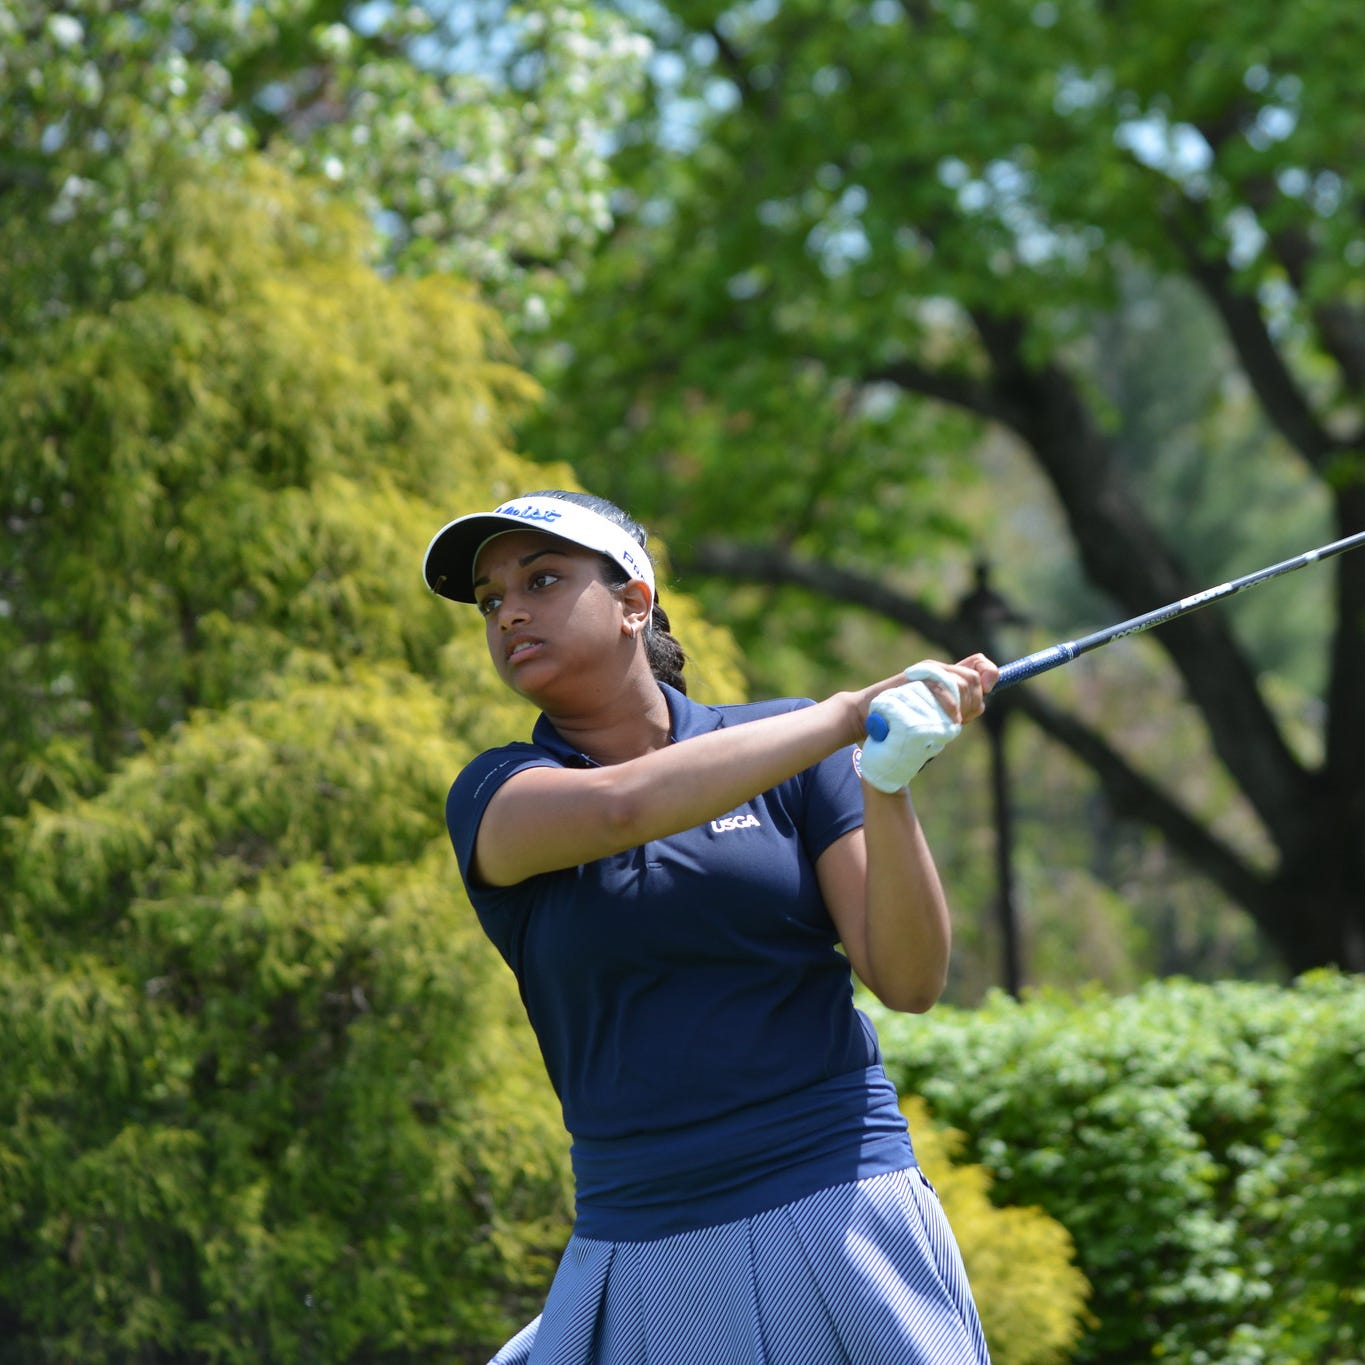 NJ golf: Holmdel 15-year-old qualifies for 2019 U.S. Women's Open